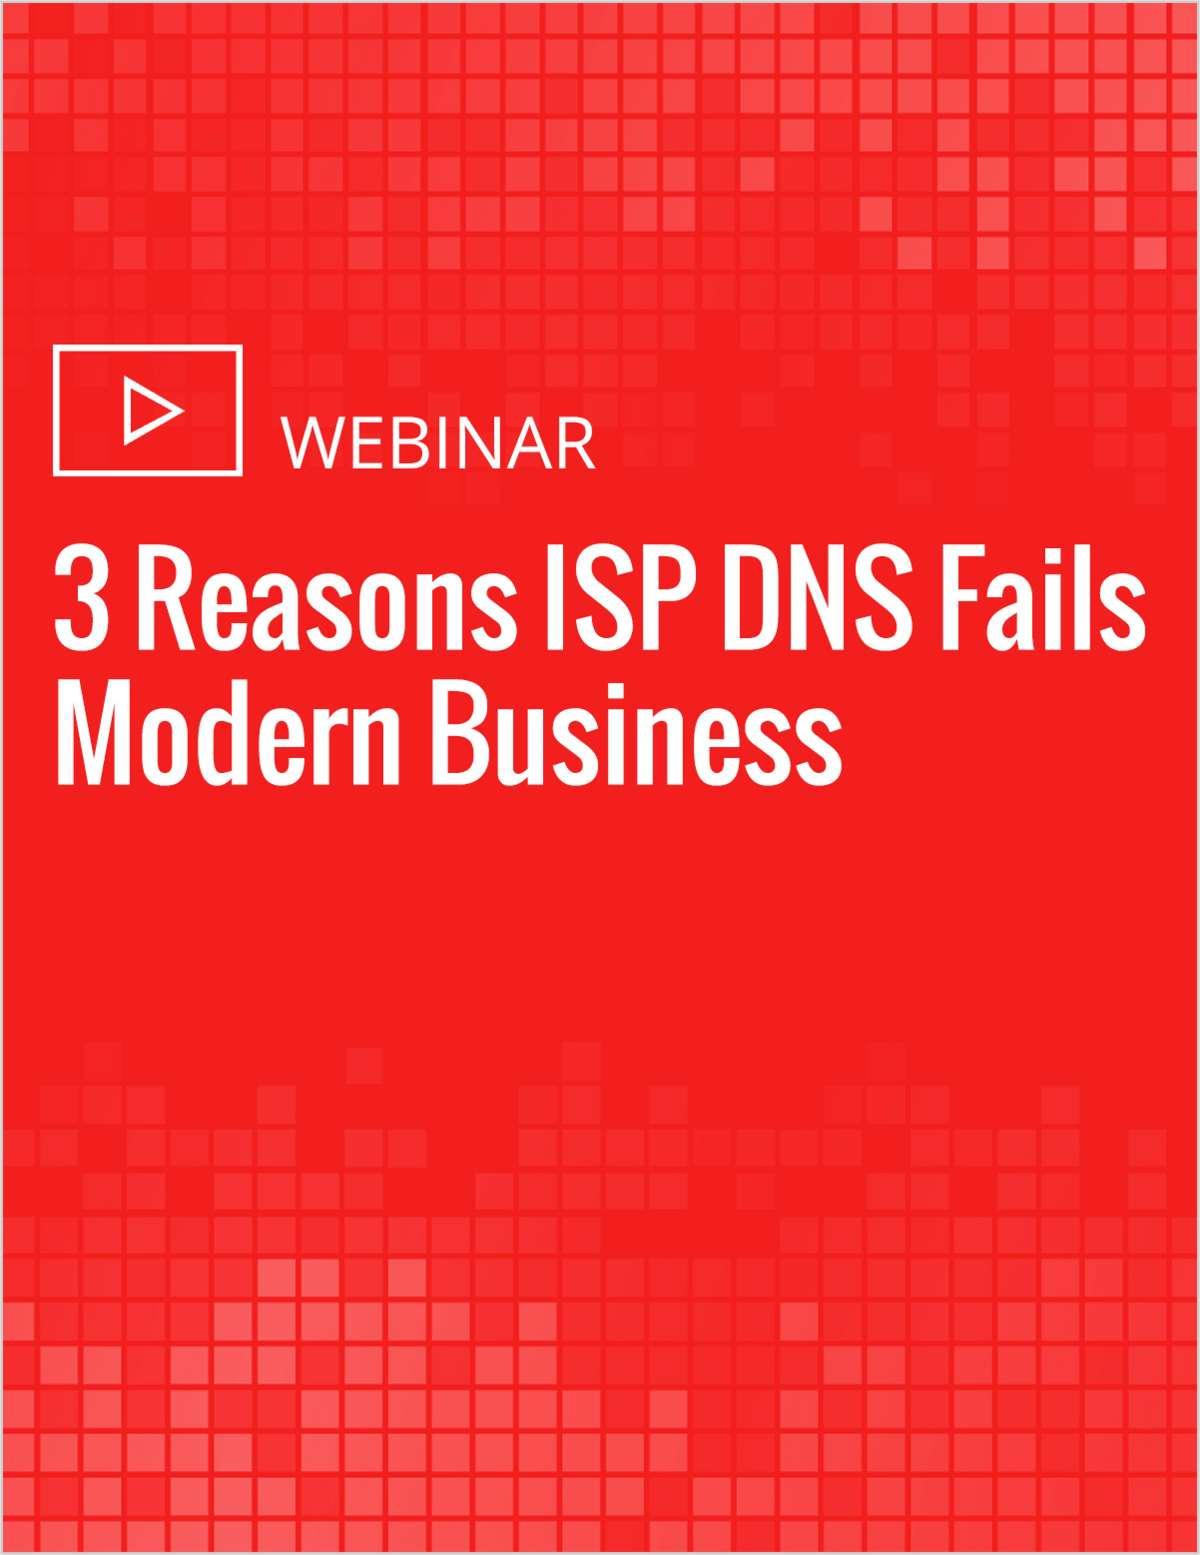 3 Reasons ISP DNS Fails Modern Business